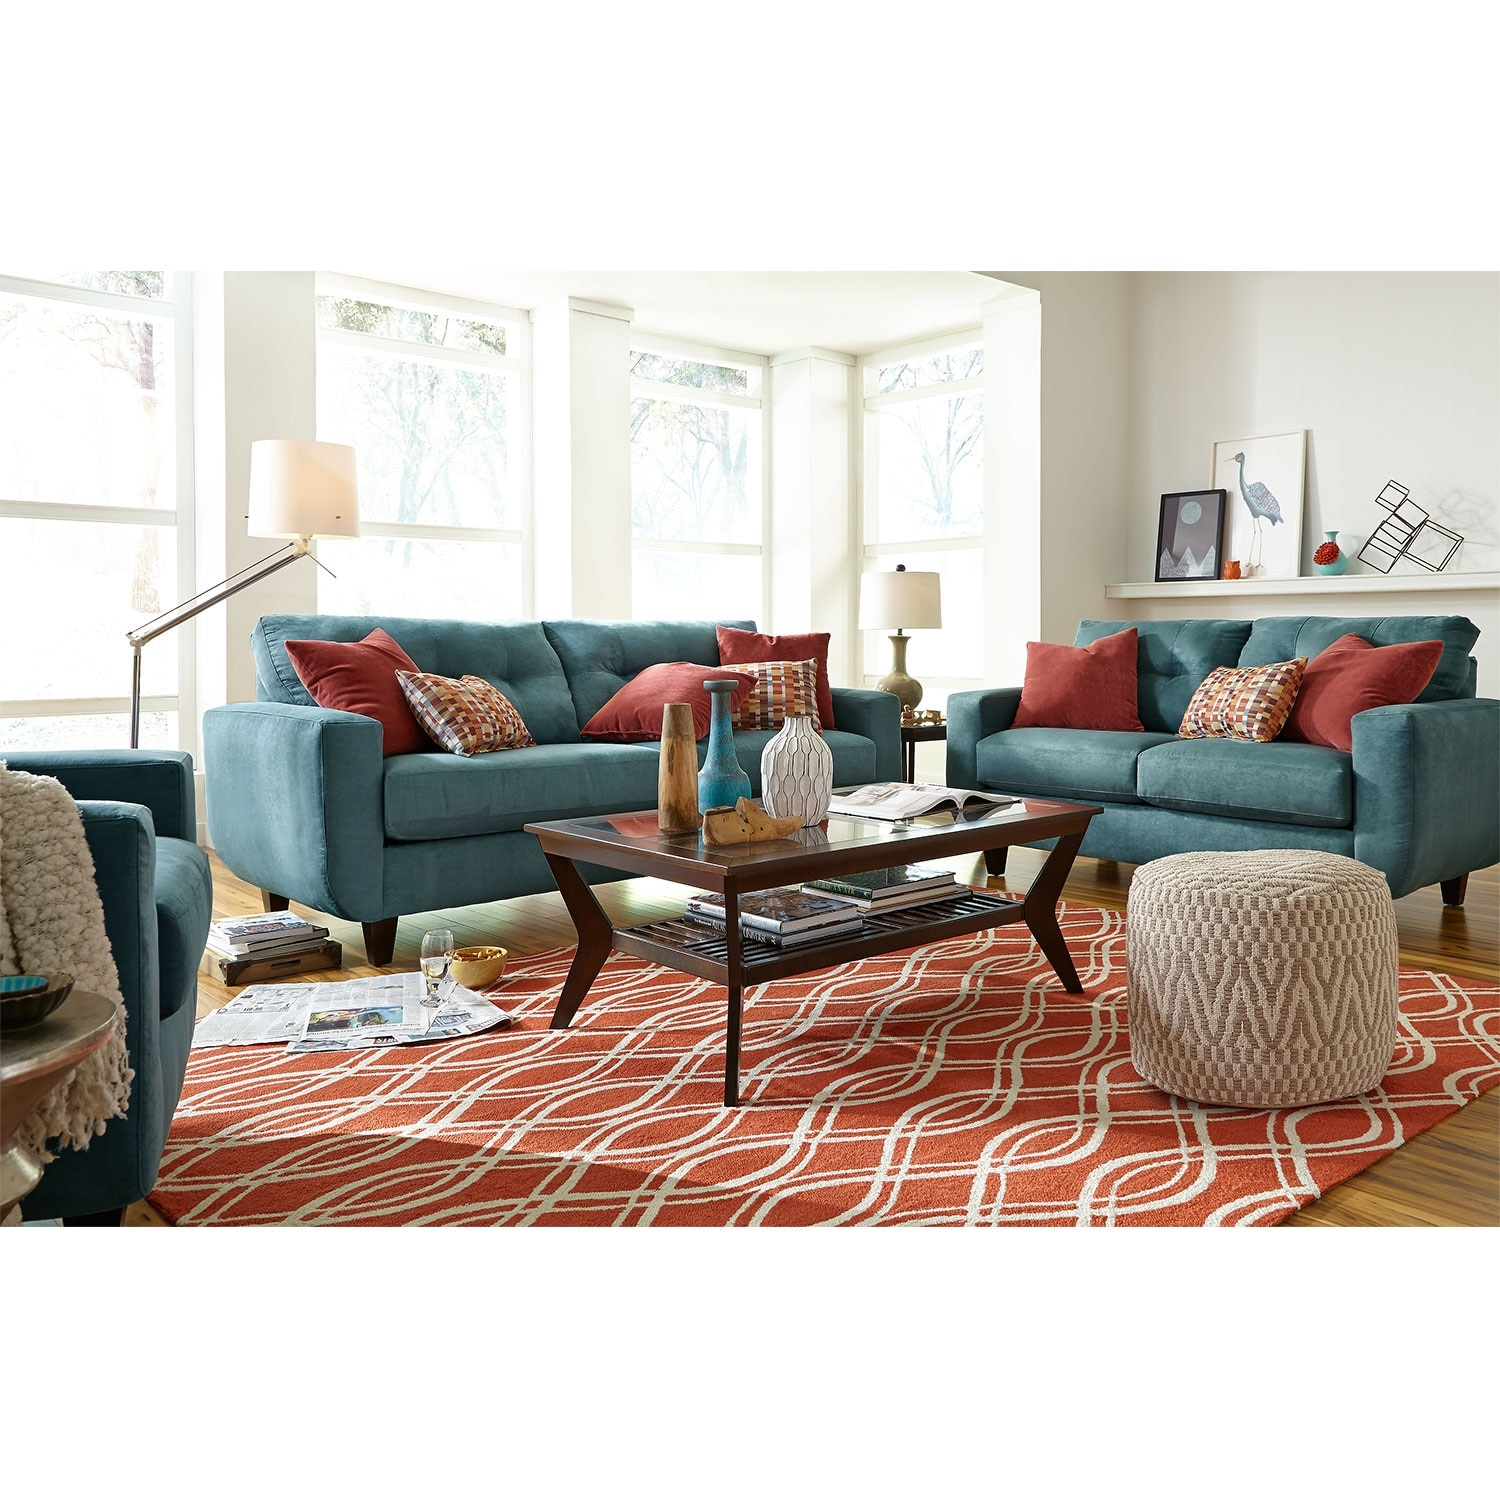 Blue sofa furniture village sofa menzilperde net for Furniture u village